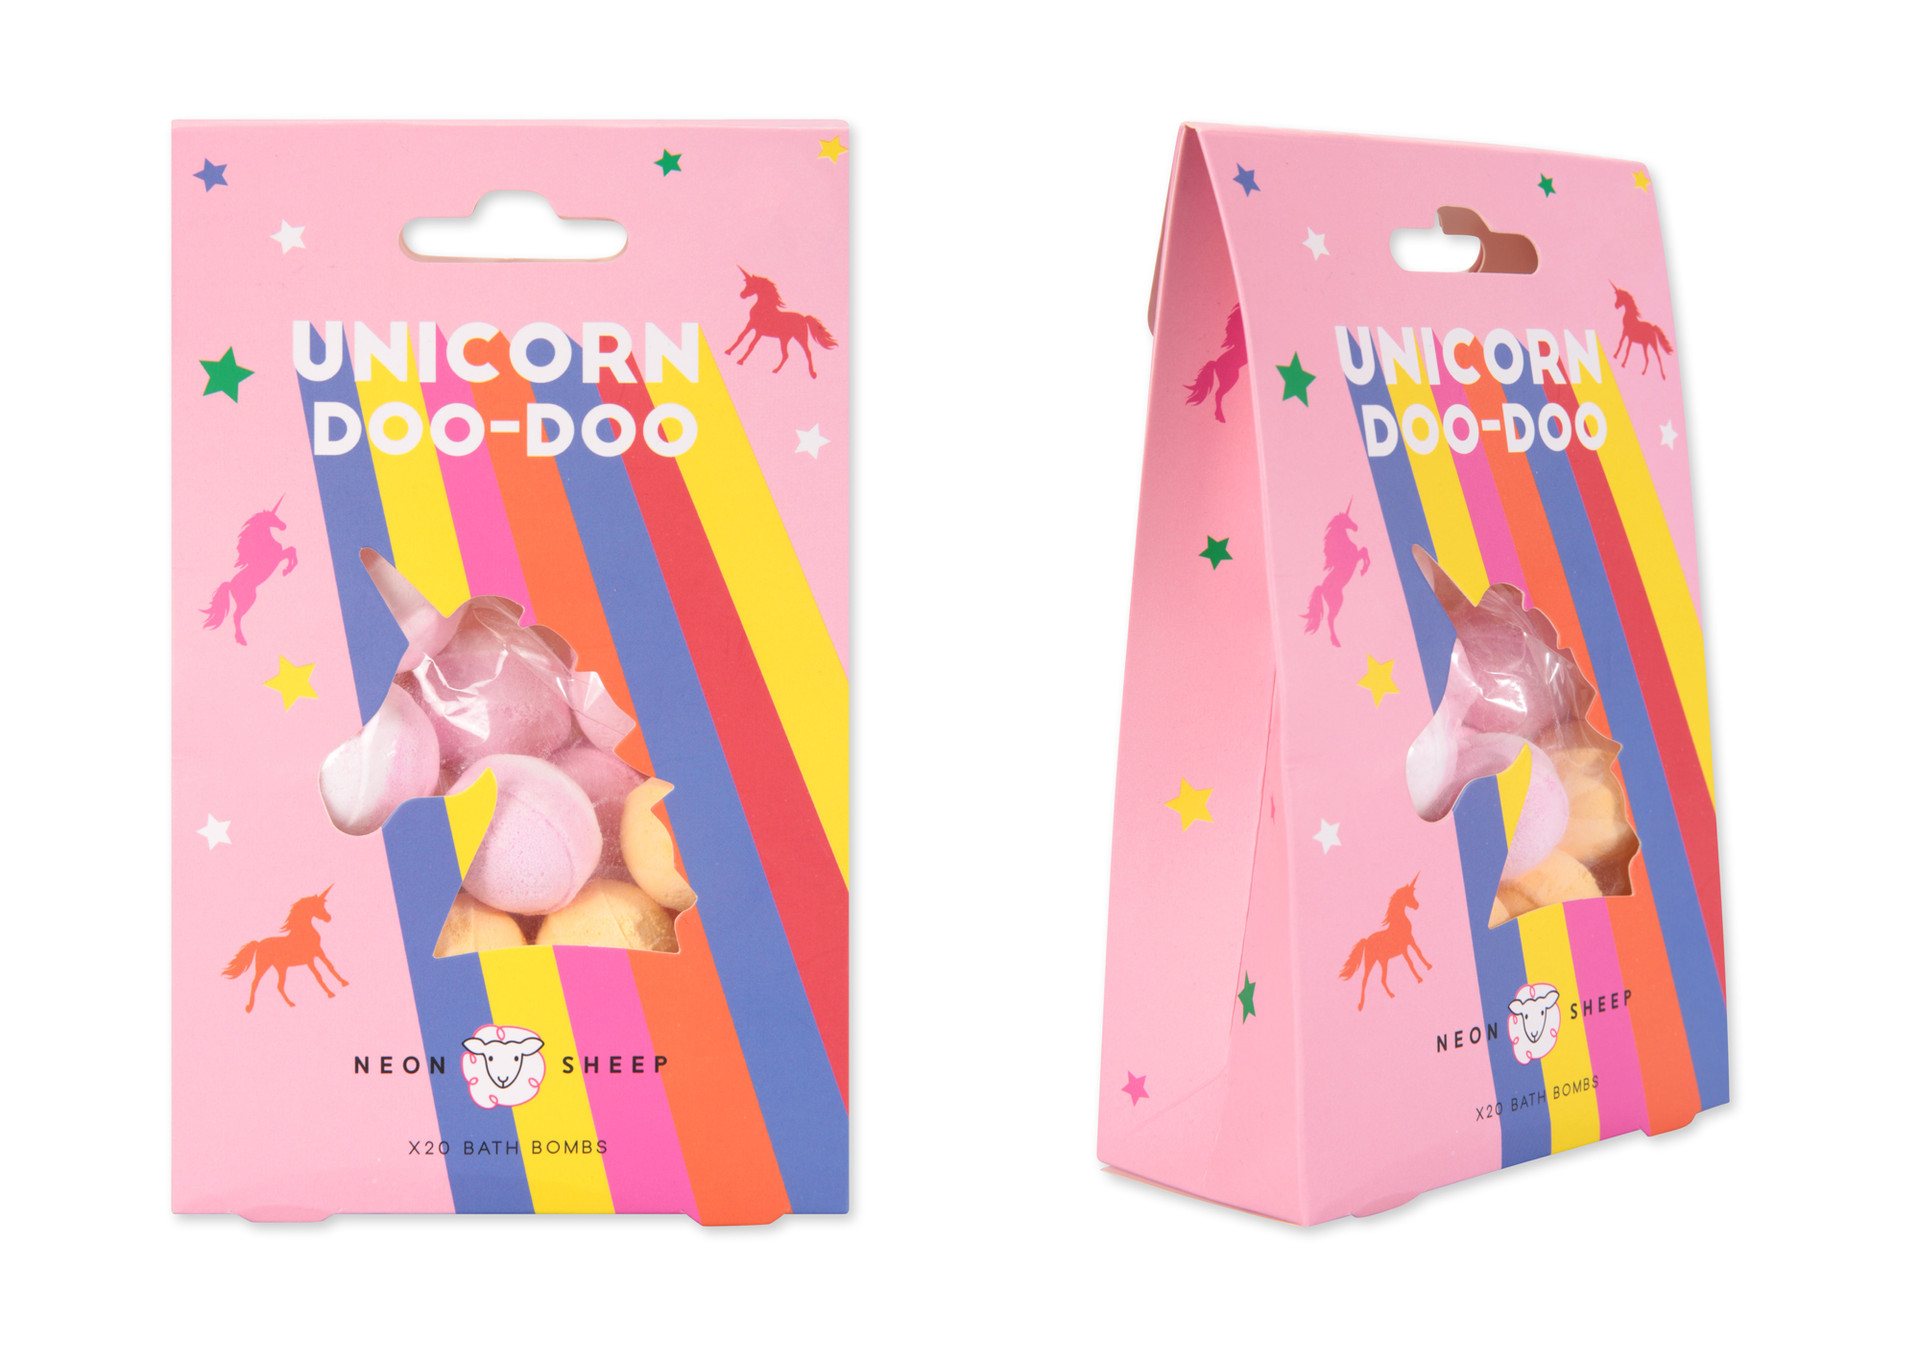 Bath bomb packaging for Neon Sheep